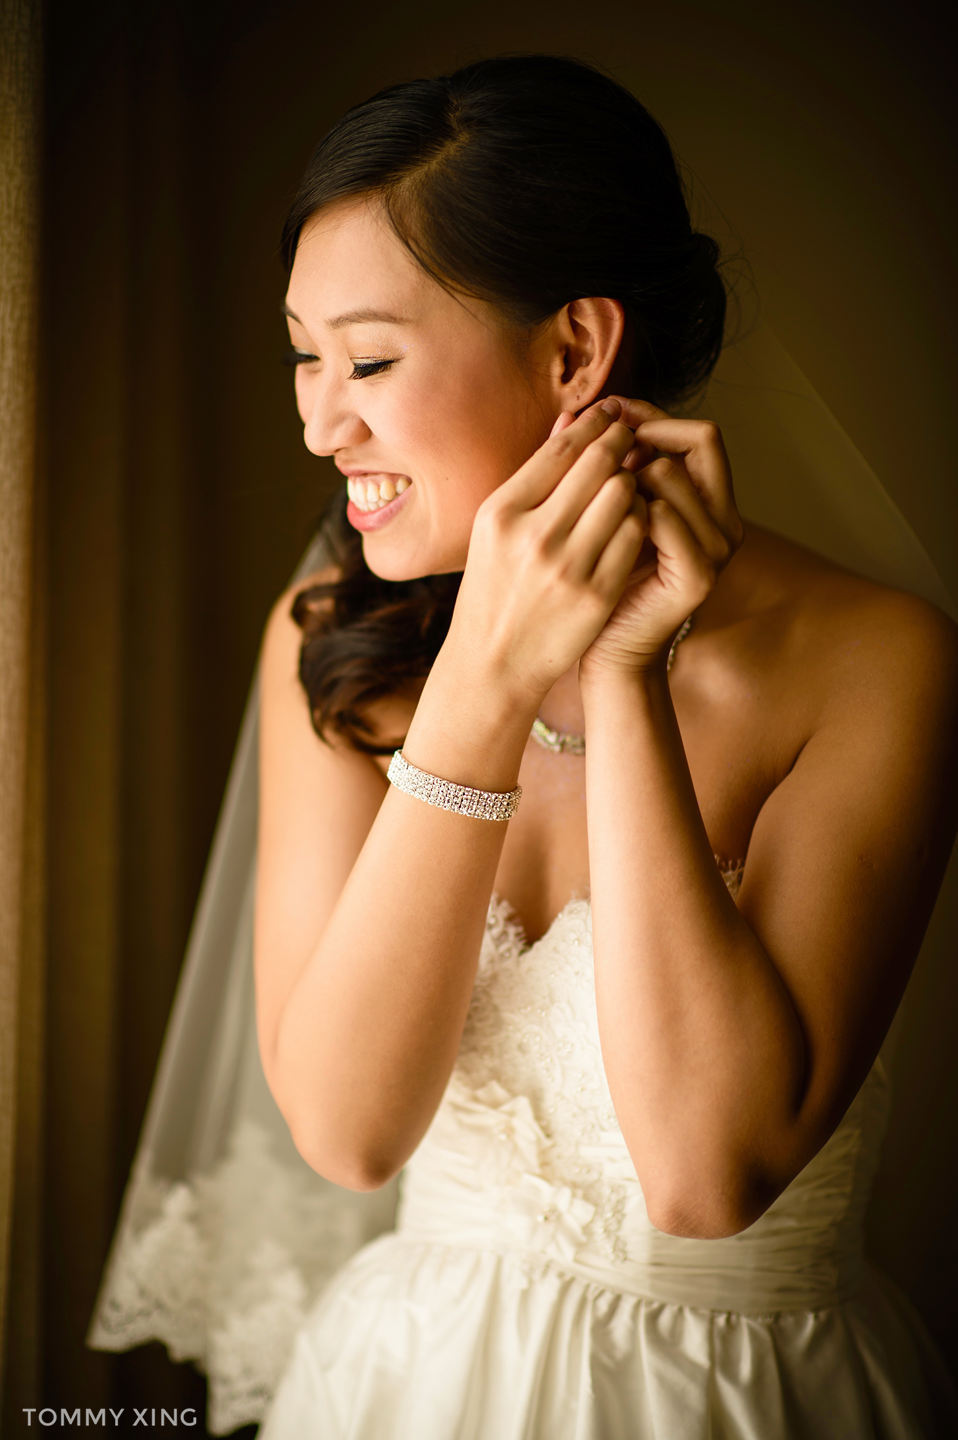 STANFORD MEMORIAL CHURCH WEDDING SAN FRANCISCO BAY AREA 斯坦福教堂婚礼 洛杉矶婚礼婚纱摄影师  Tommy Xing 13.jpg